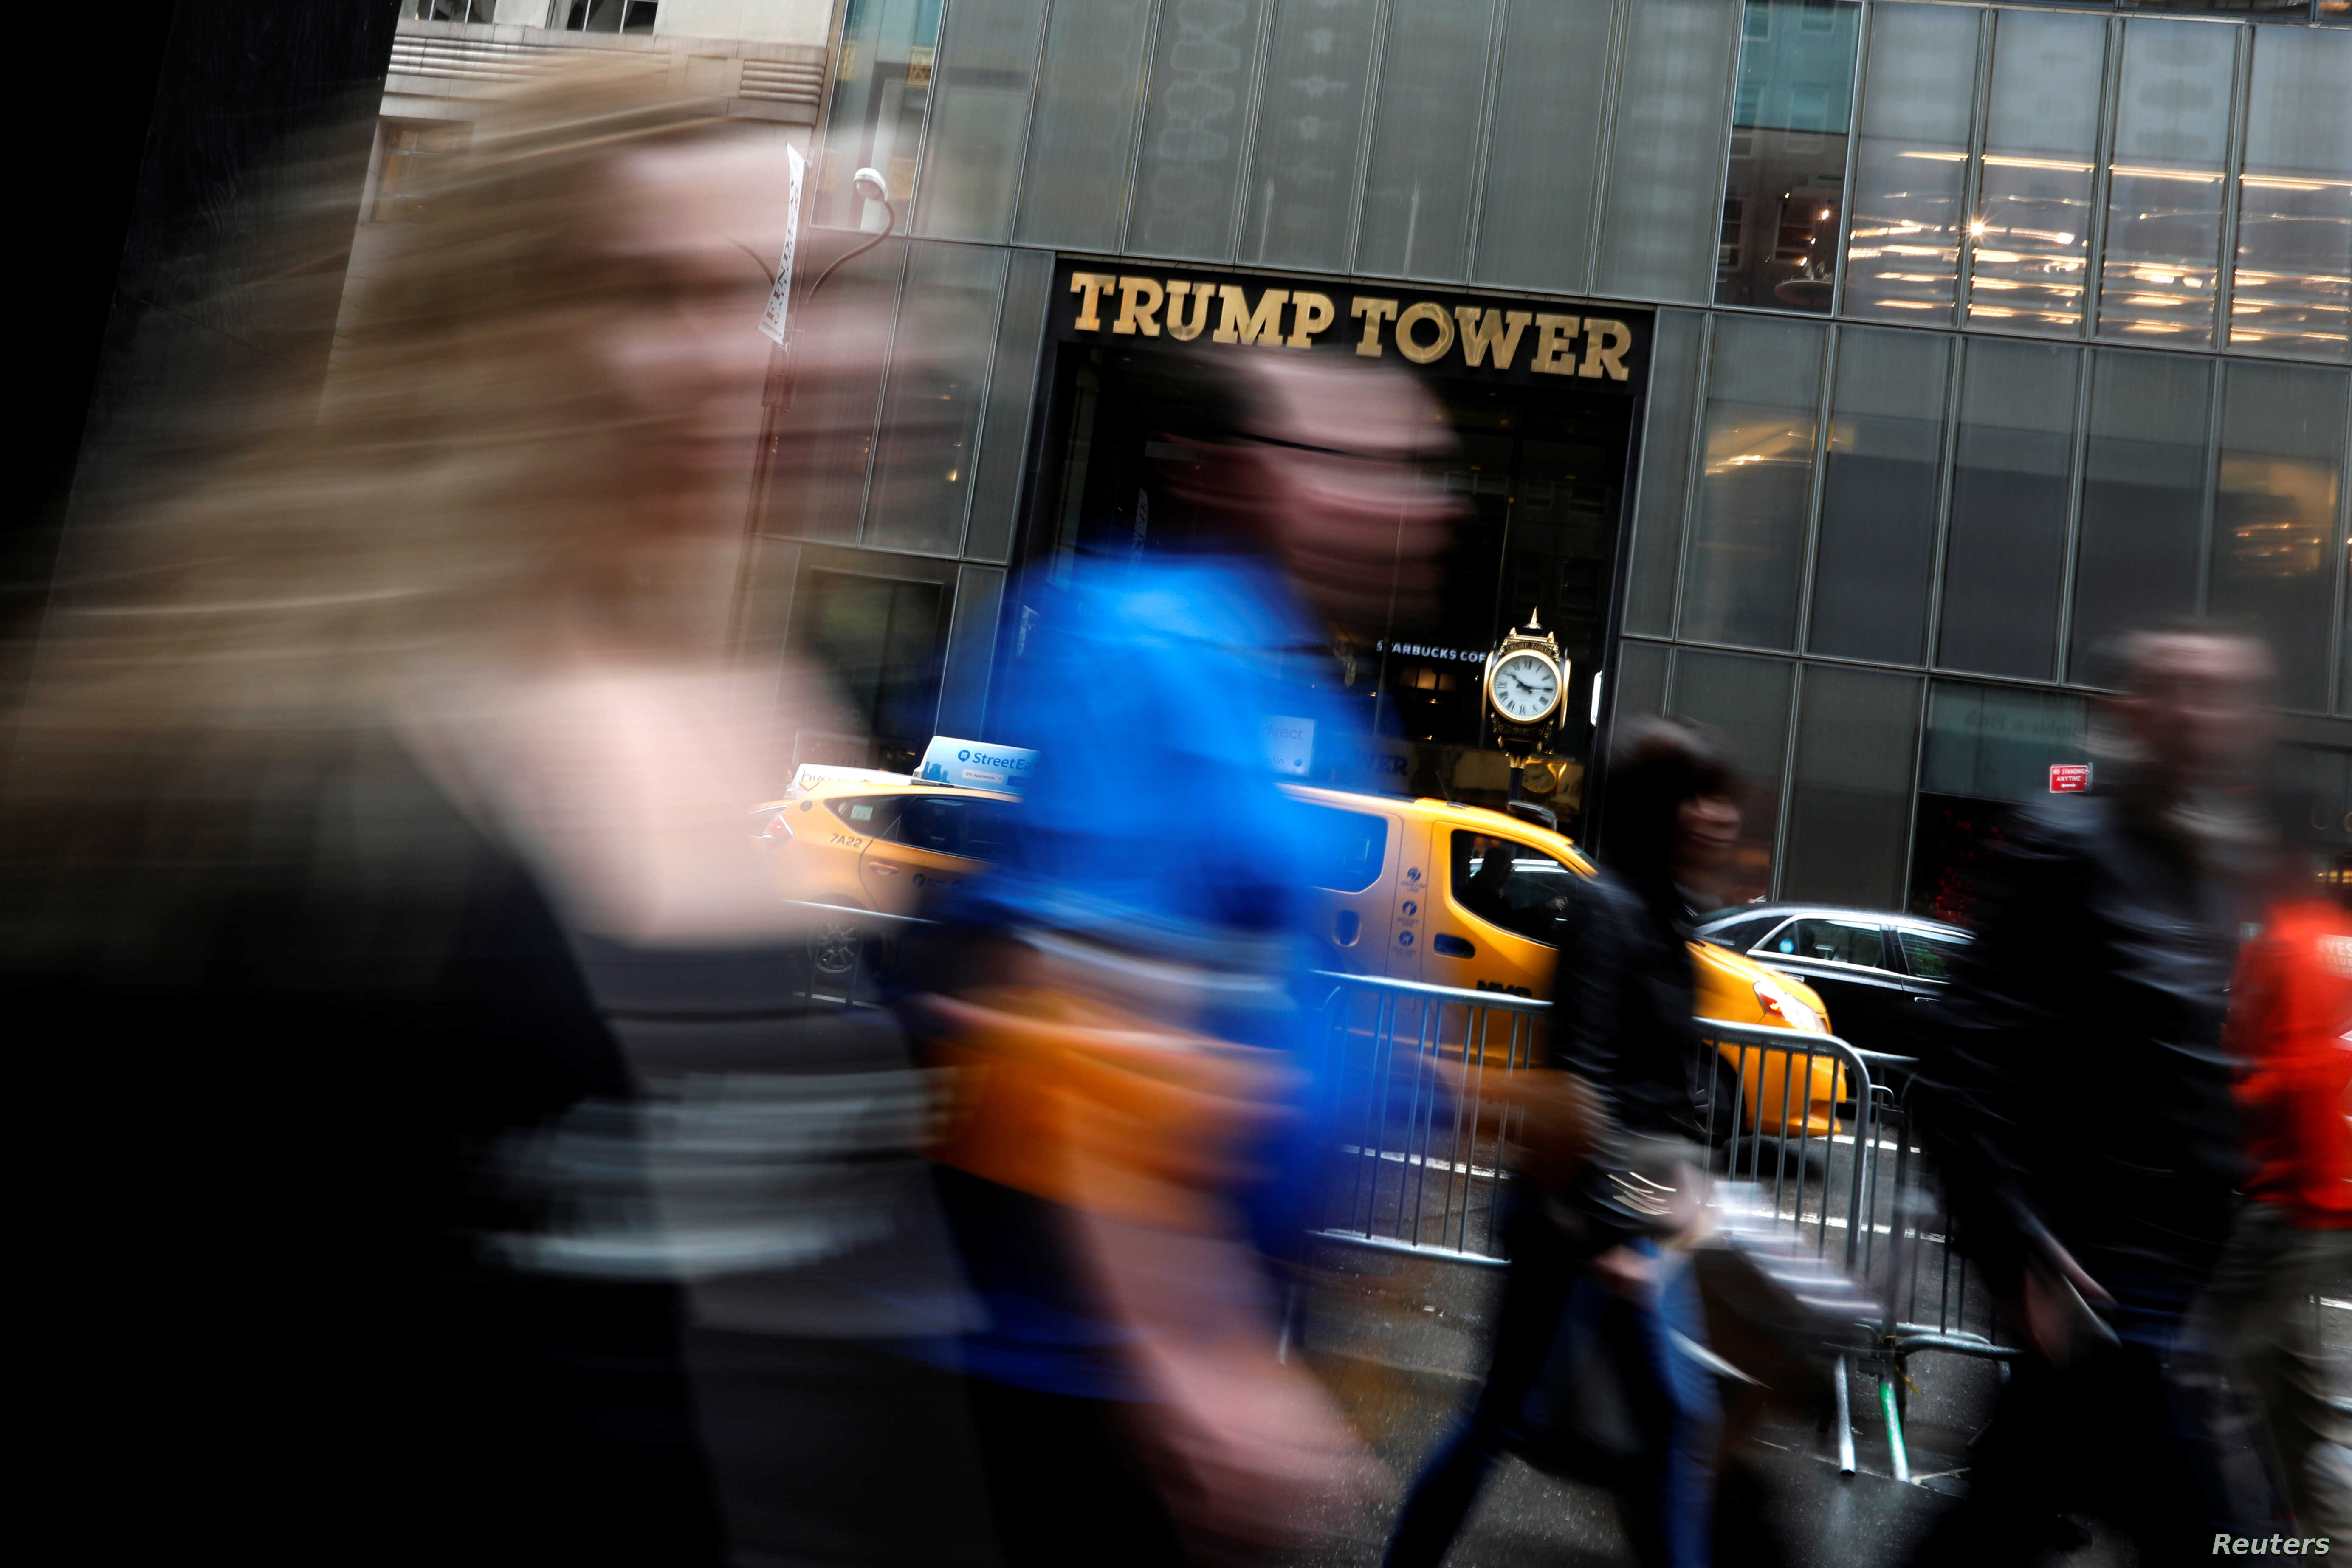 FILE - FILE - Pedestrians are seen in a slow shutter speed photograph as they pass Trump Tower on 5th Avenue in New York City, April 26, 2017.